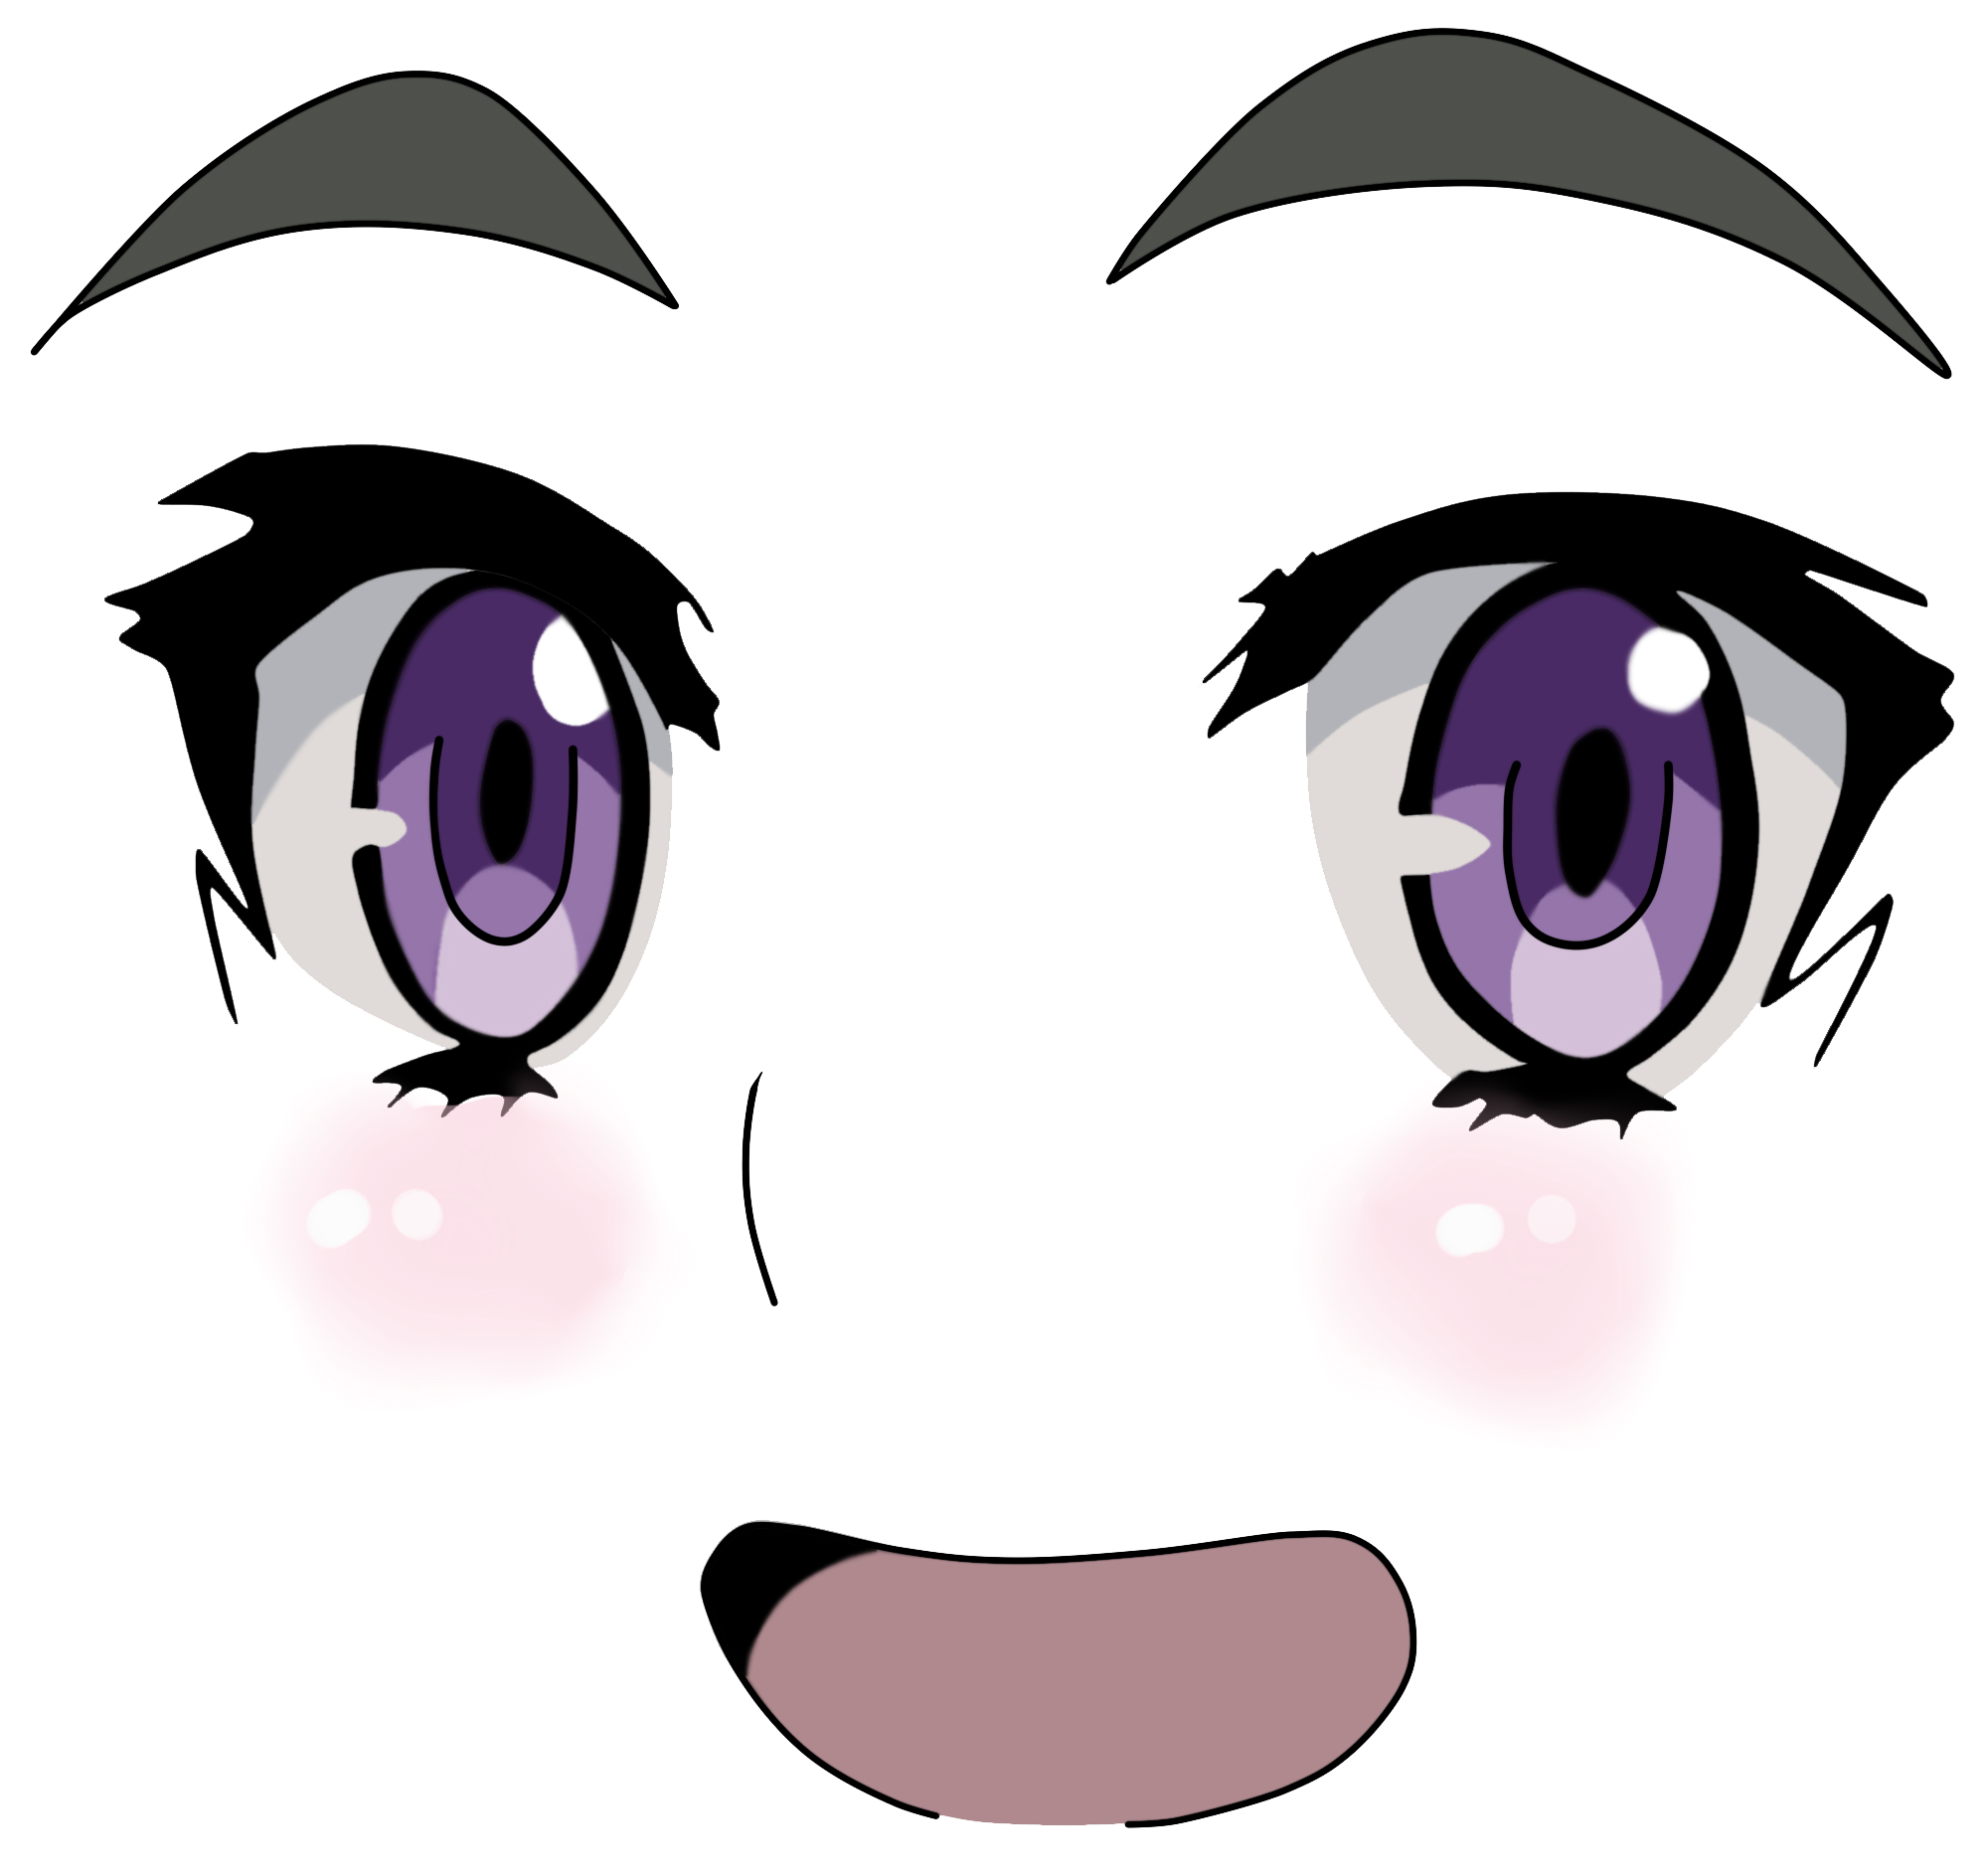 Cute images in collection. Kawaii anime eyes png svg library download